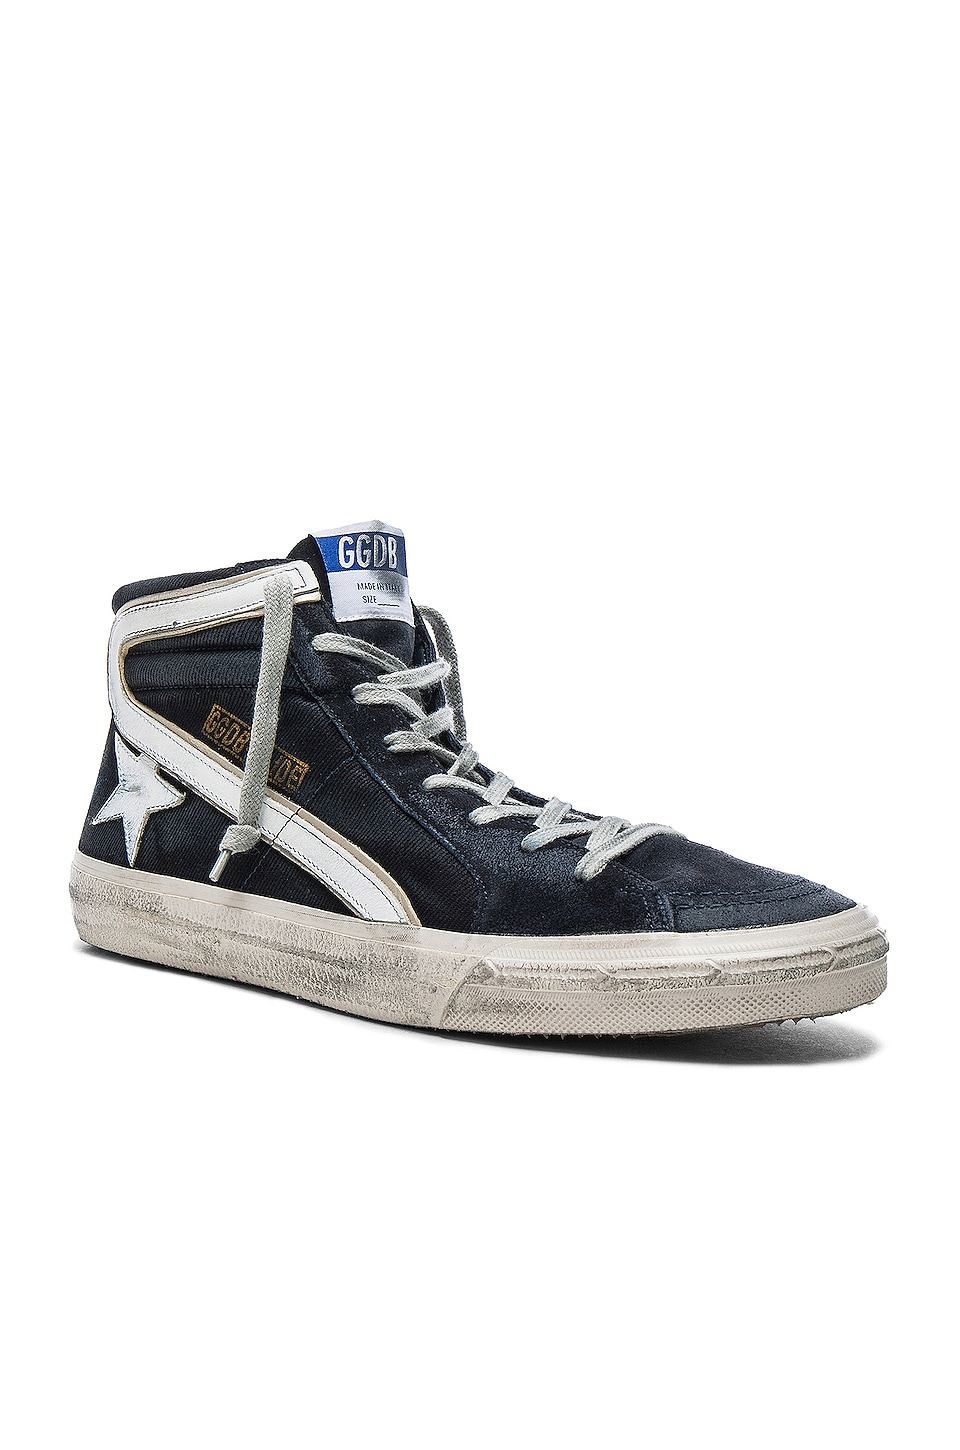 Golden Goose Suede Slide Sneakers in Navy Denim